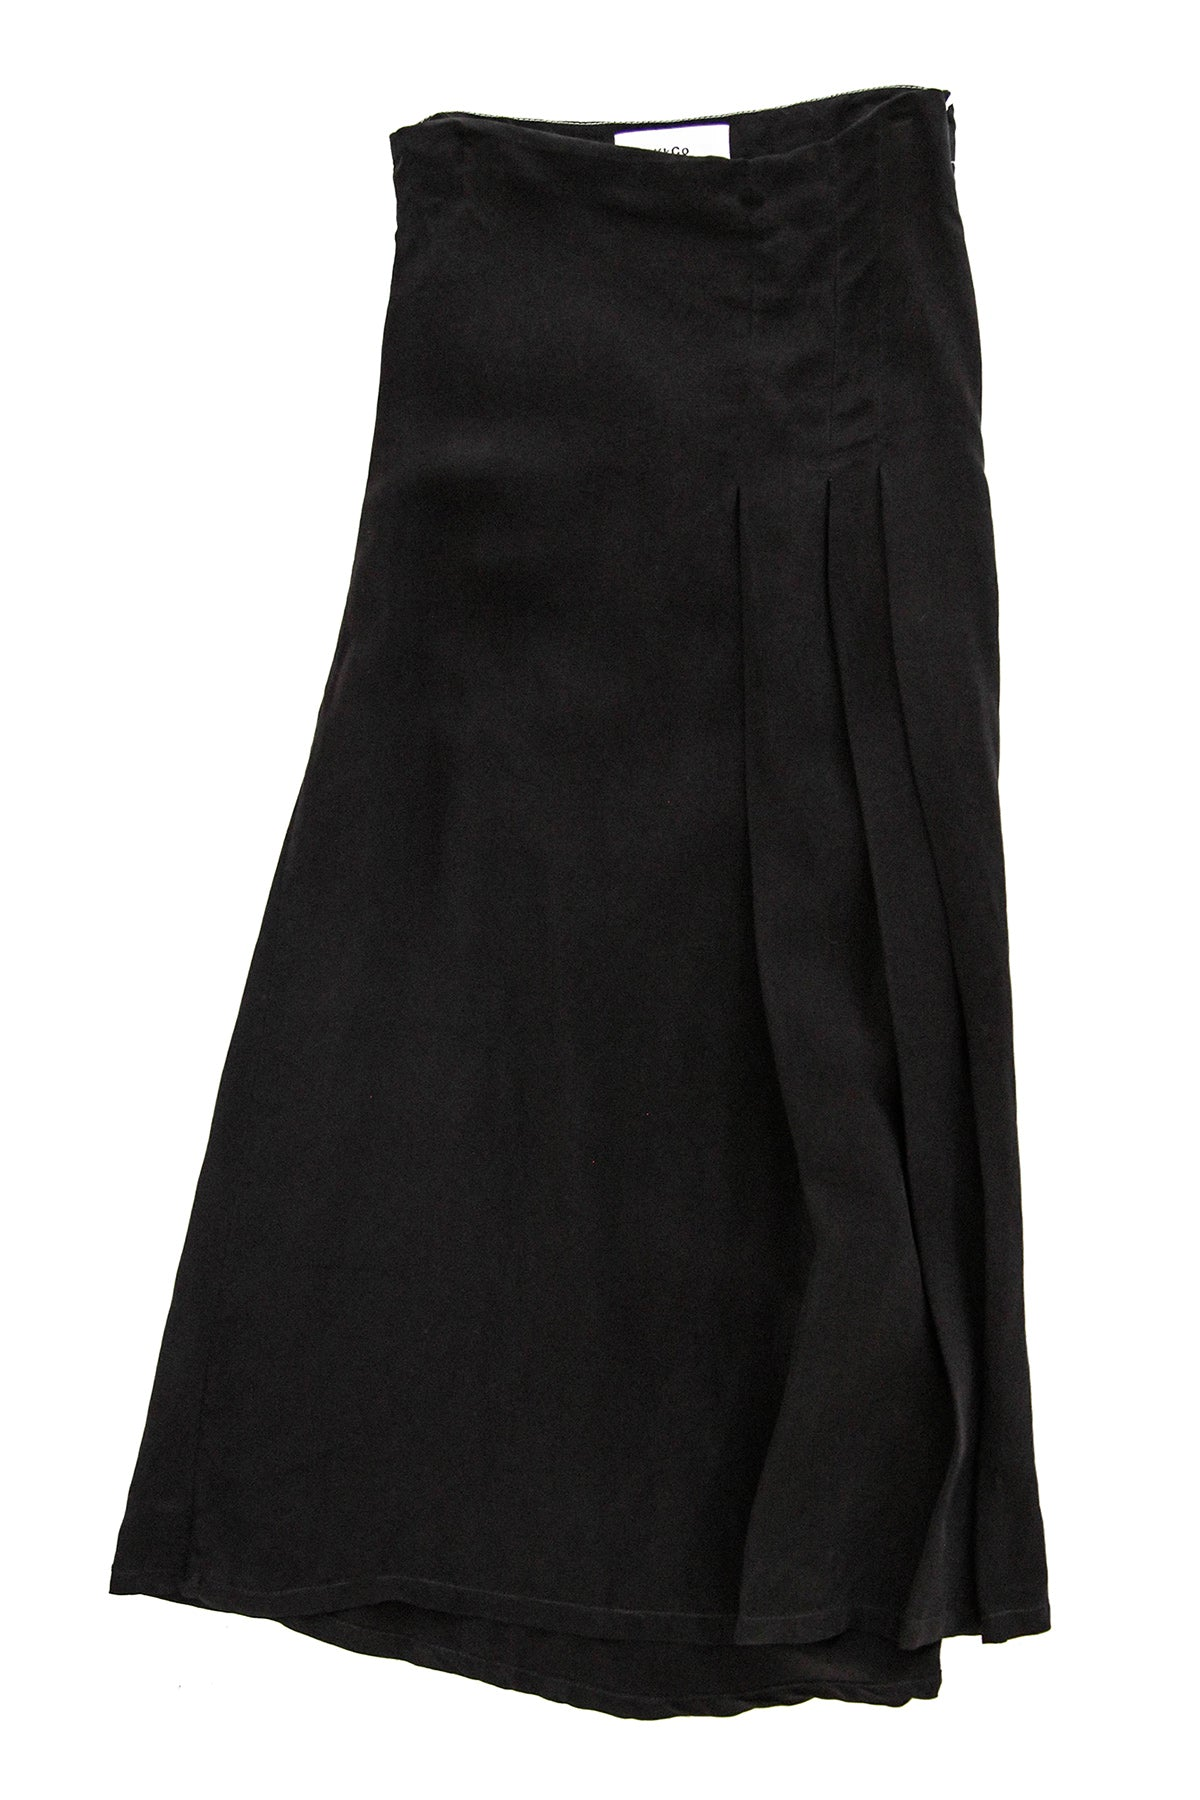 Poppy Skirt in Black